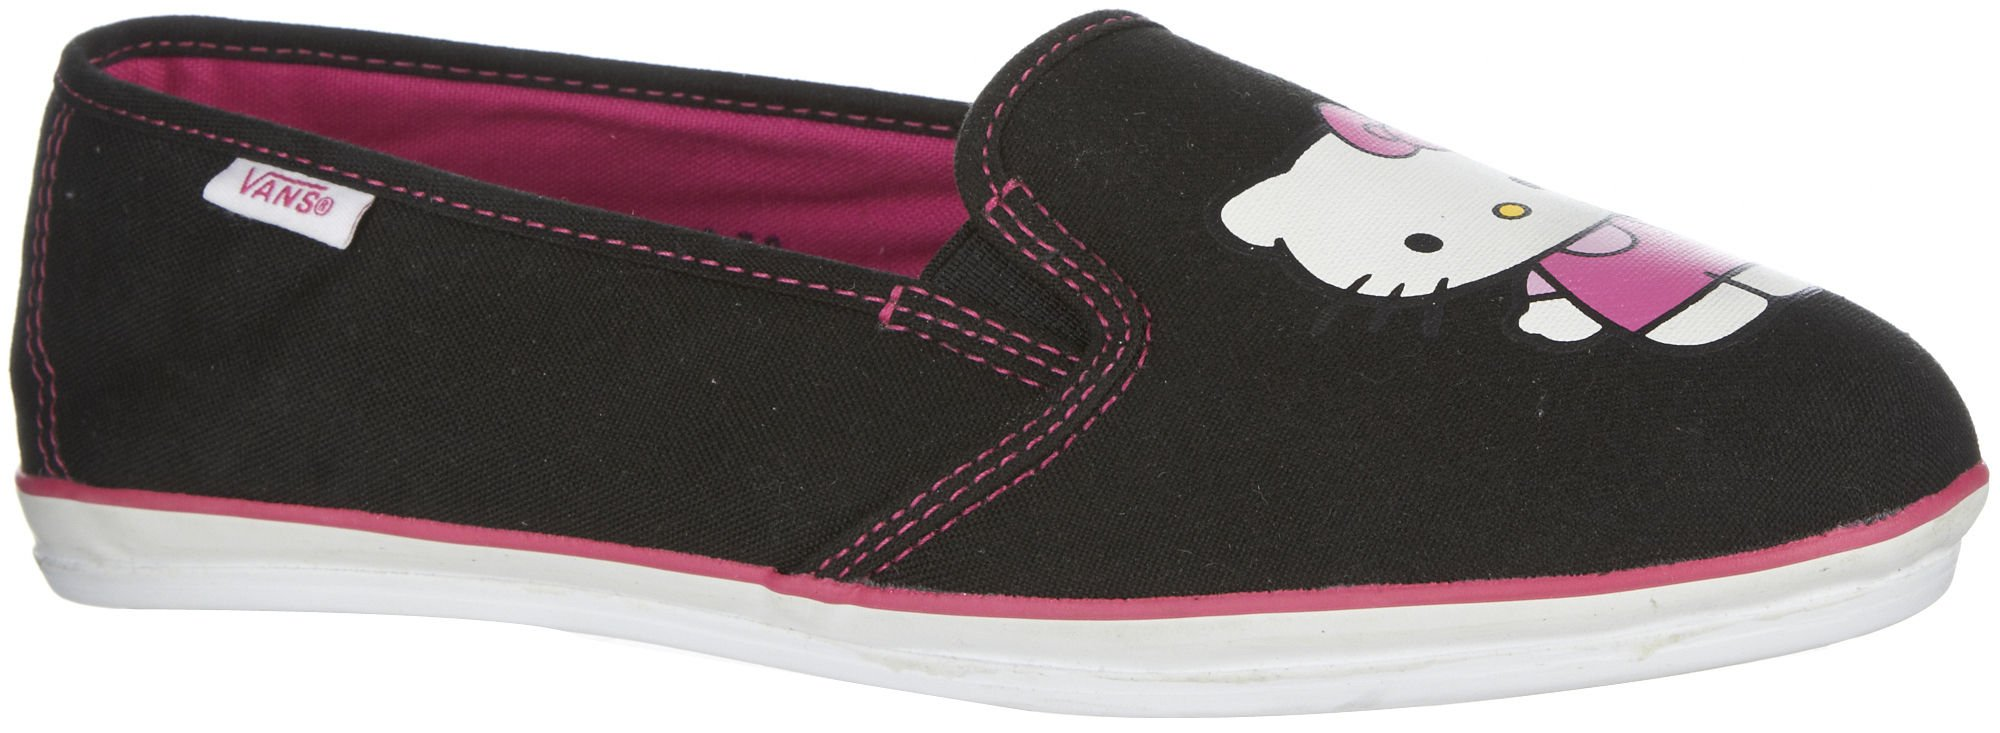 553270d9b7199 Galleon - Vans Women's Kalani (Hello Kitty) Casual Shoes (6)